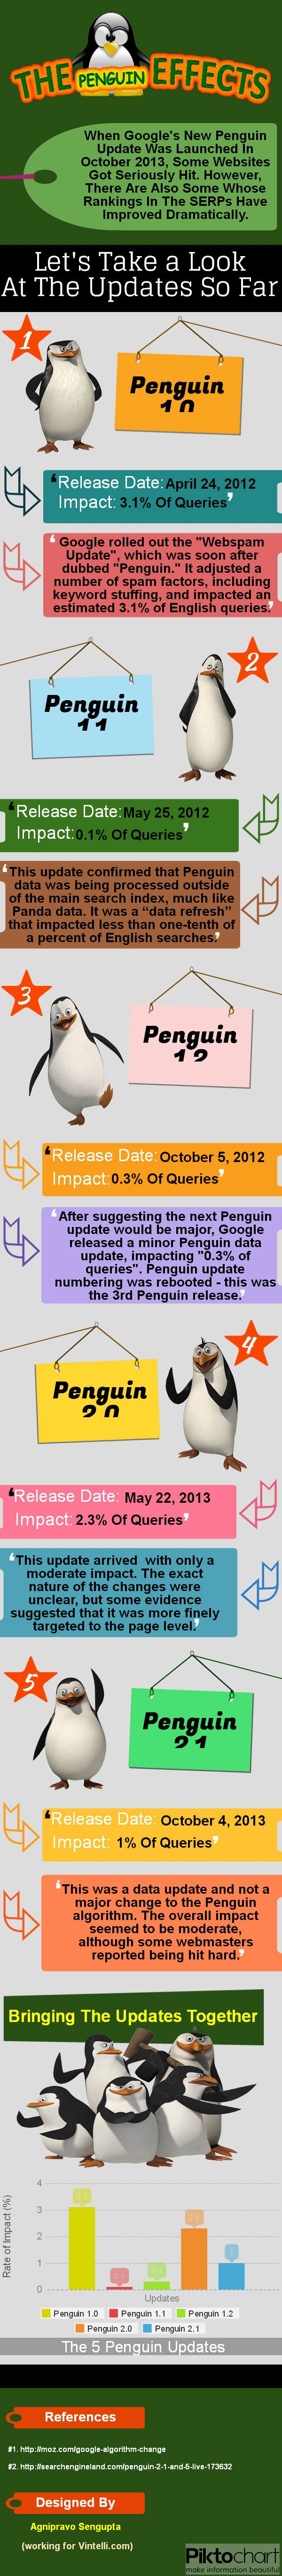 #INFOgraphic > Google Penguin Effects: Not any particular graphic design elements here, but quite useful for the seo squad as it recaps the 5 Google Penguin algorithm updates and the magnitude of their effects on search result rankings.  > http://infographicsmania.com/google-penguin-effects/?utm_source=Pinterest&utm_medium=INFOGRAPHICSMANIA&utm_campaign=SNAP